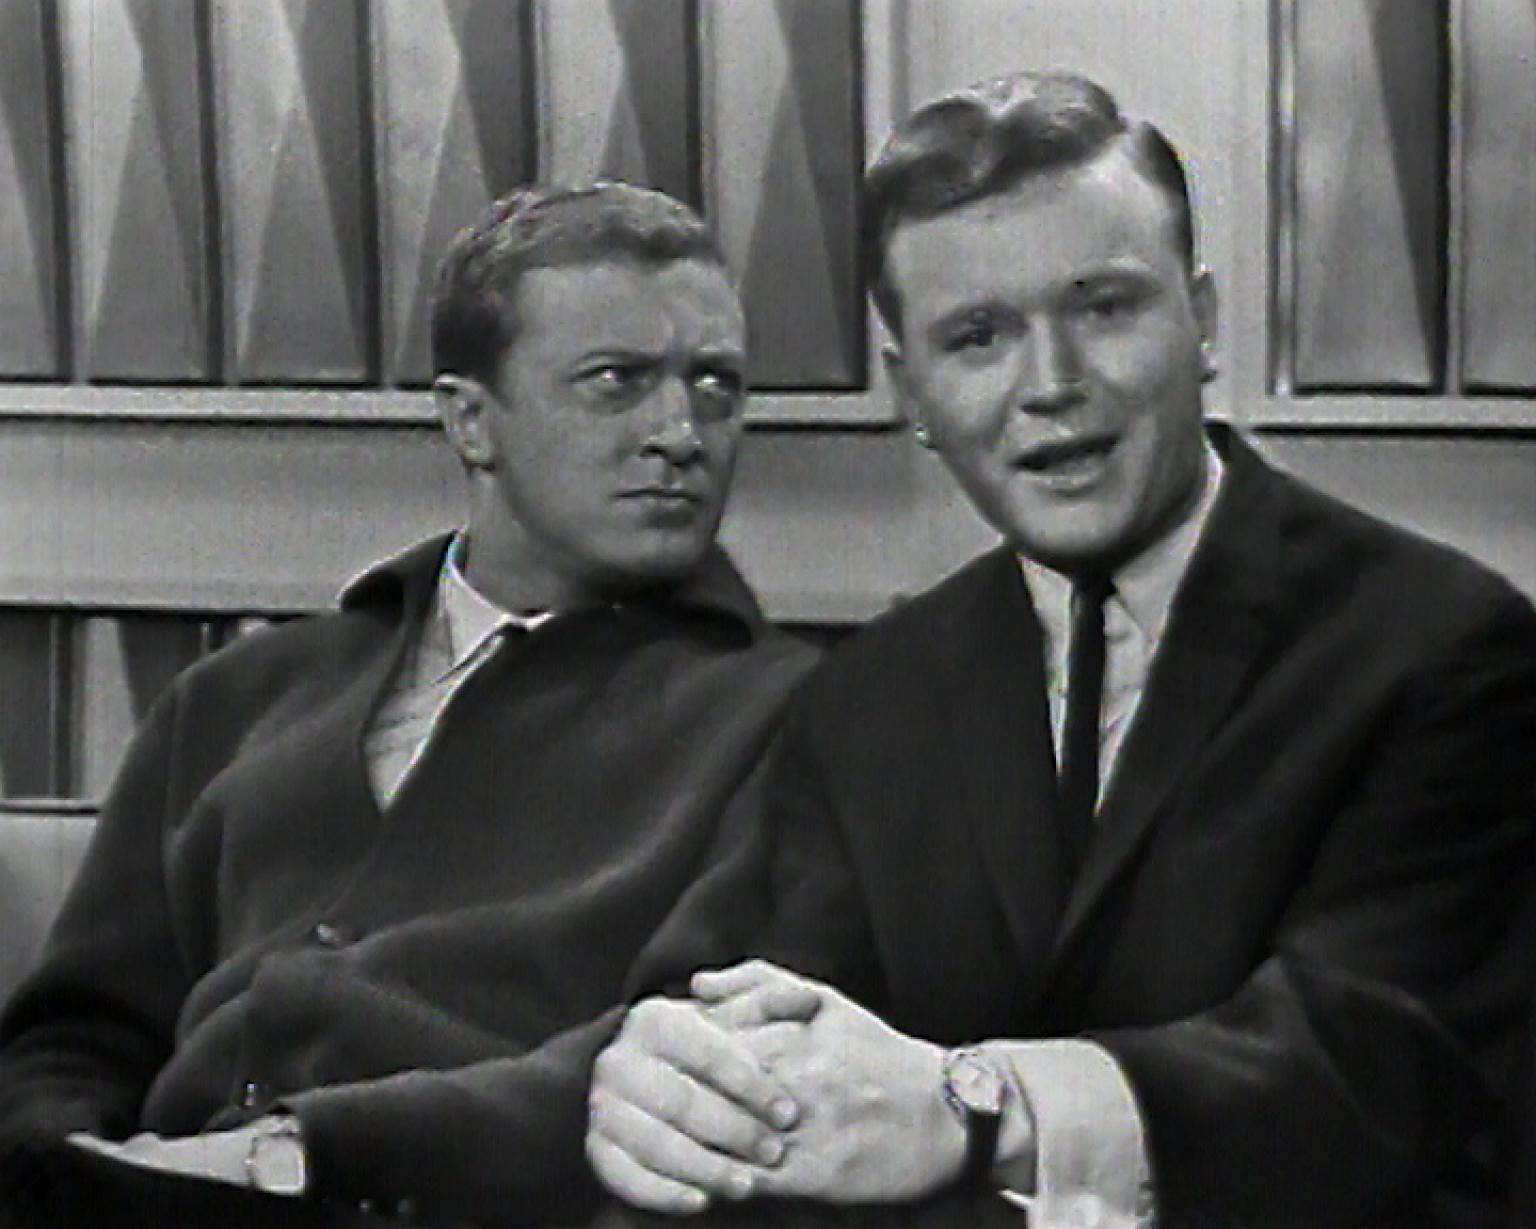 Graham Kennedy looking at Bert Newton who is looking into camera